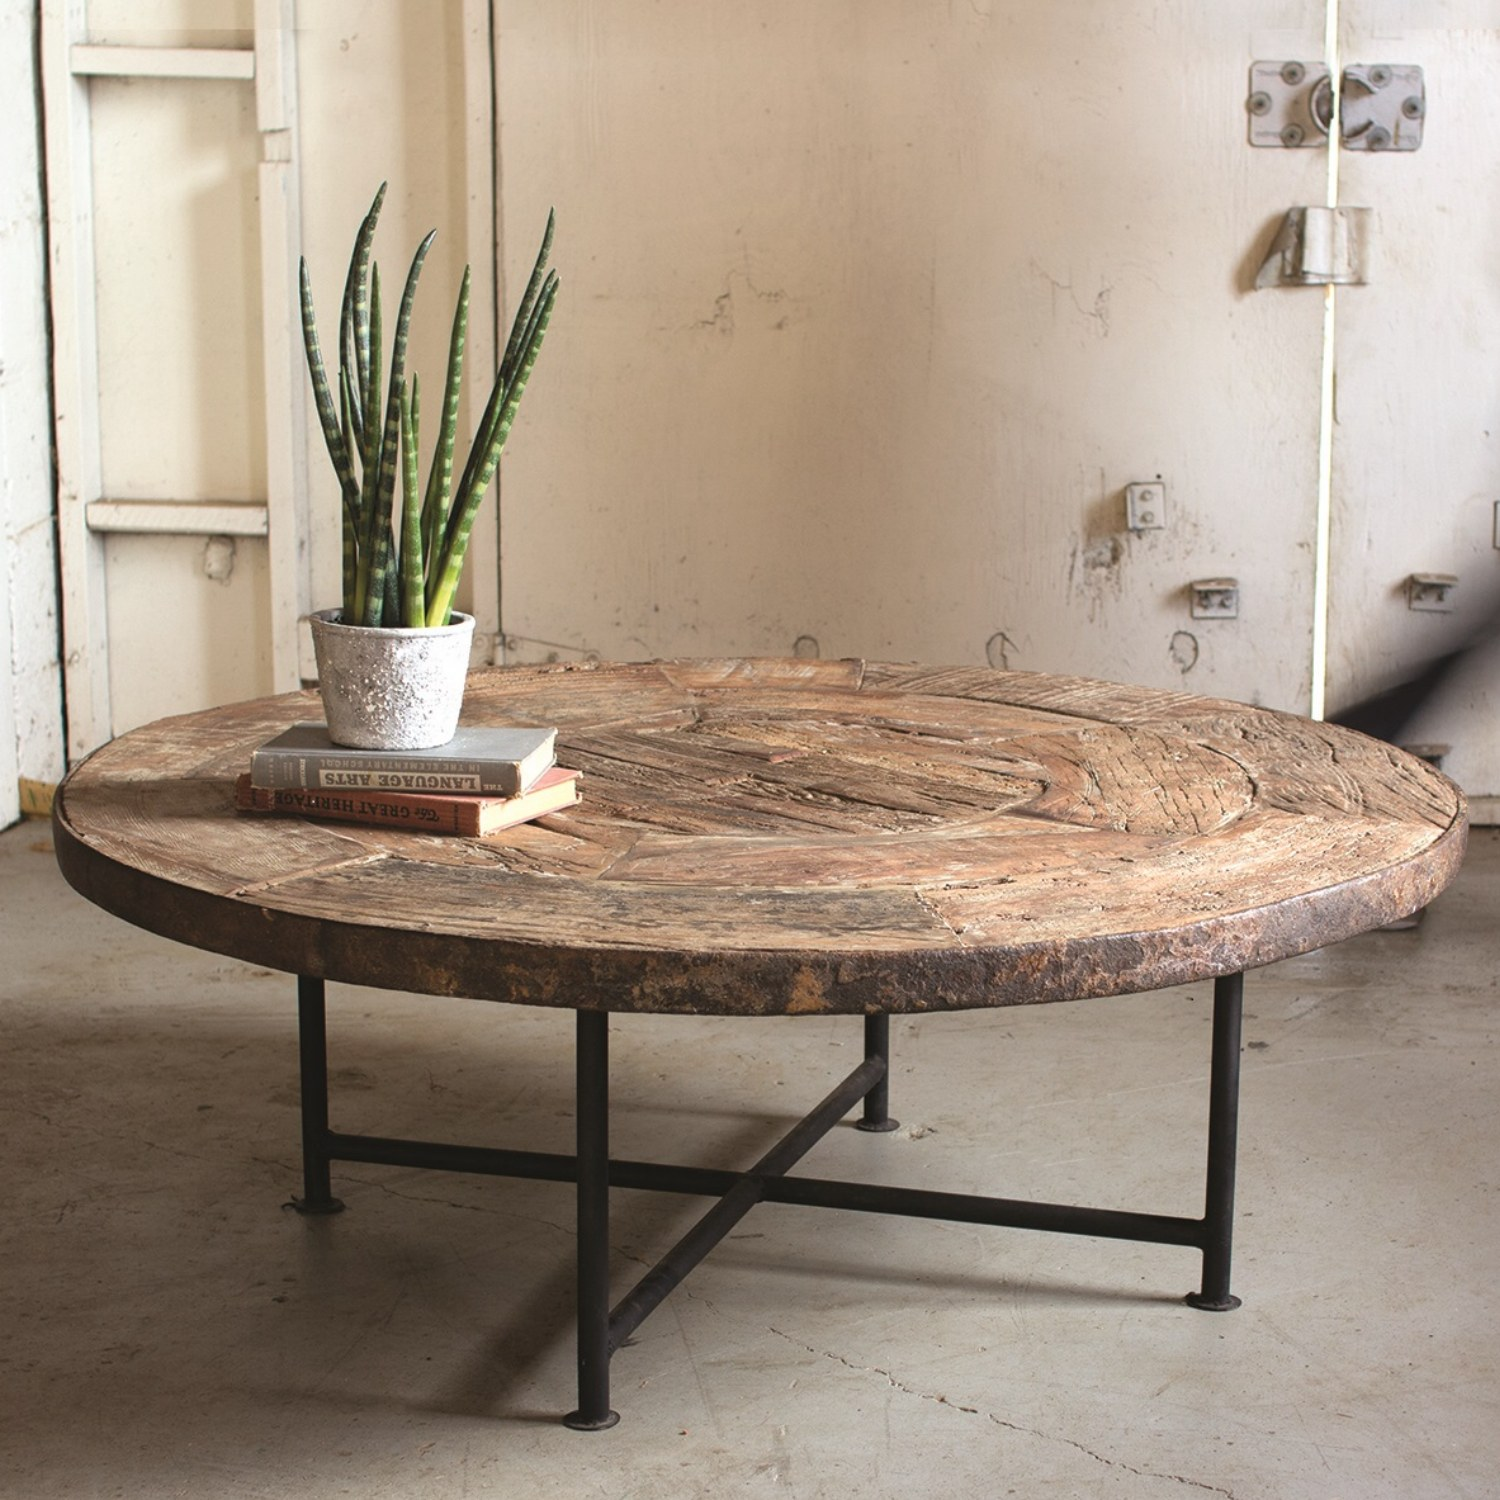 Indoor Home Bars: Round Coffee Table From Recycled Vintage Wood Wagon Wheel